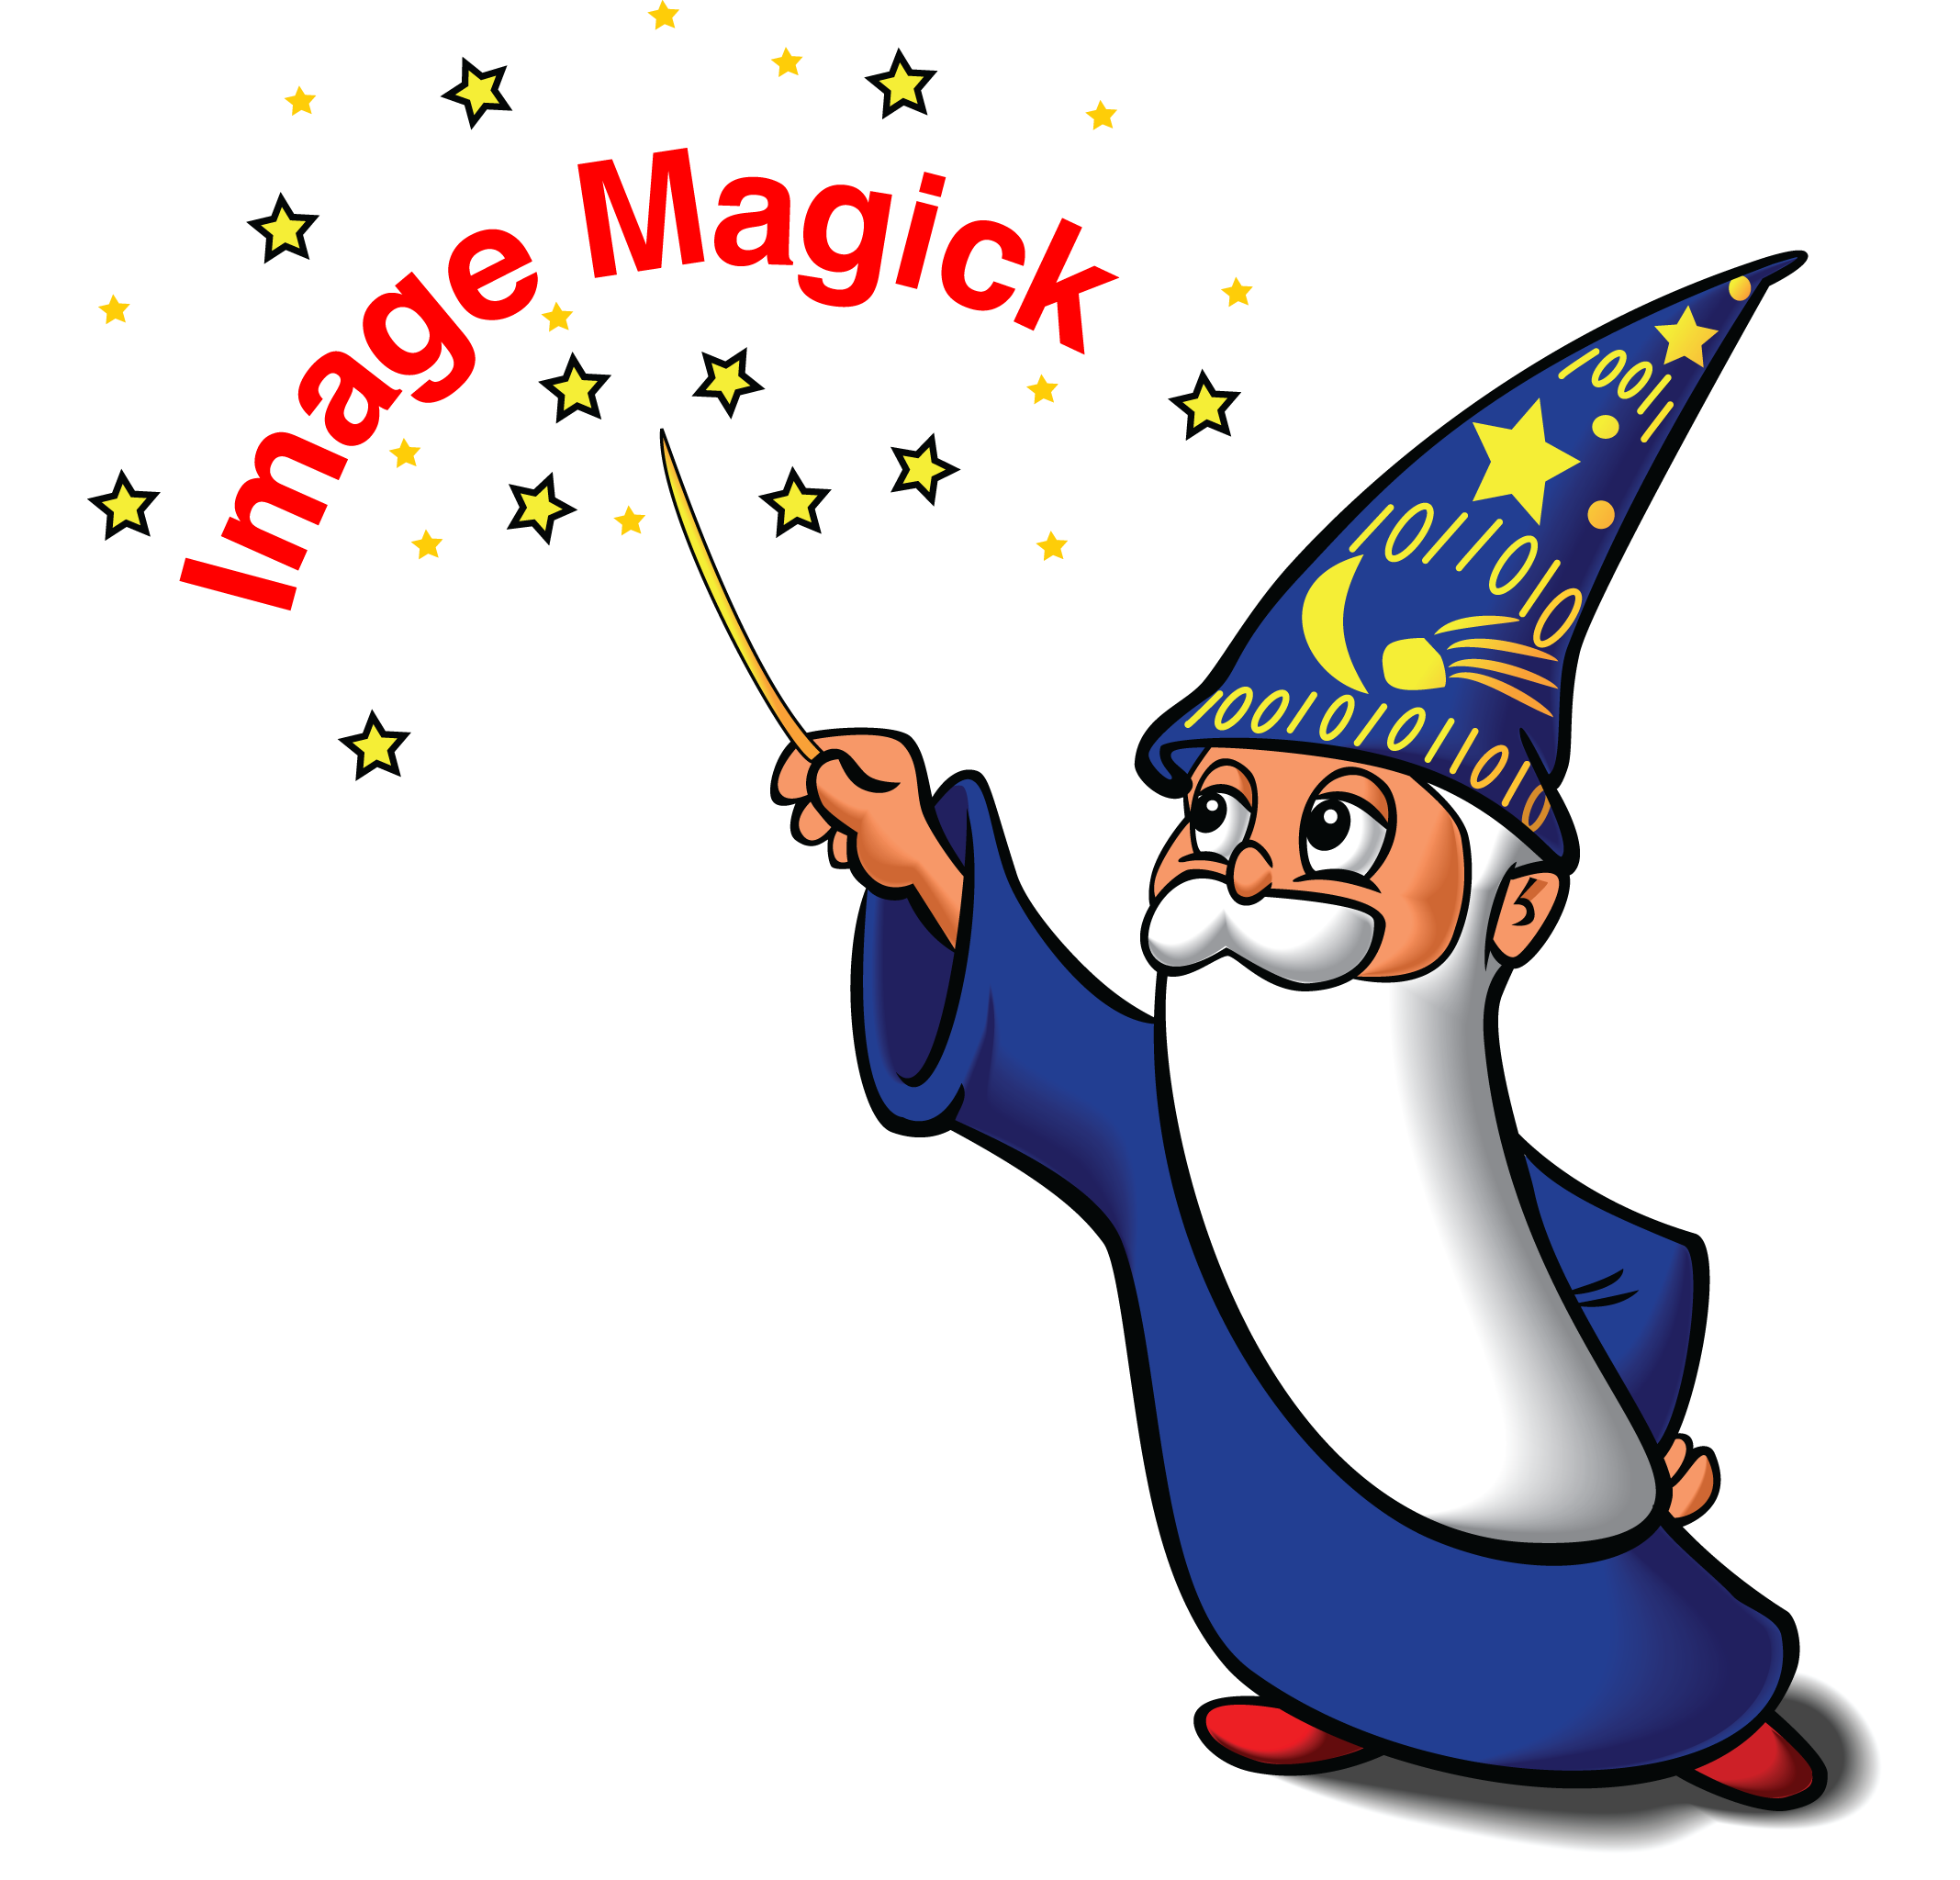 http://upload.wikimedia.org/wikipedia/commons/0/0d/Imagemagick-logo.png